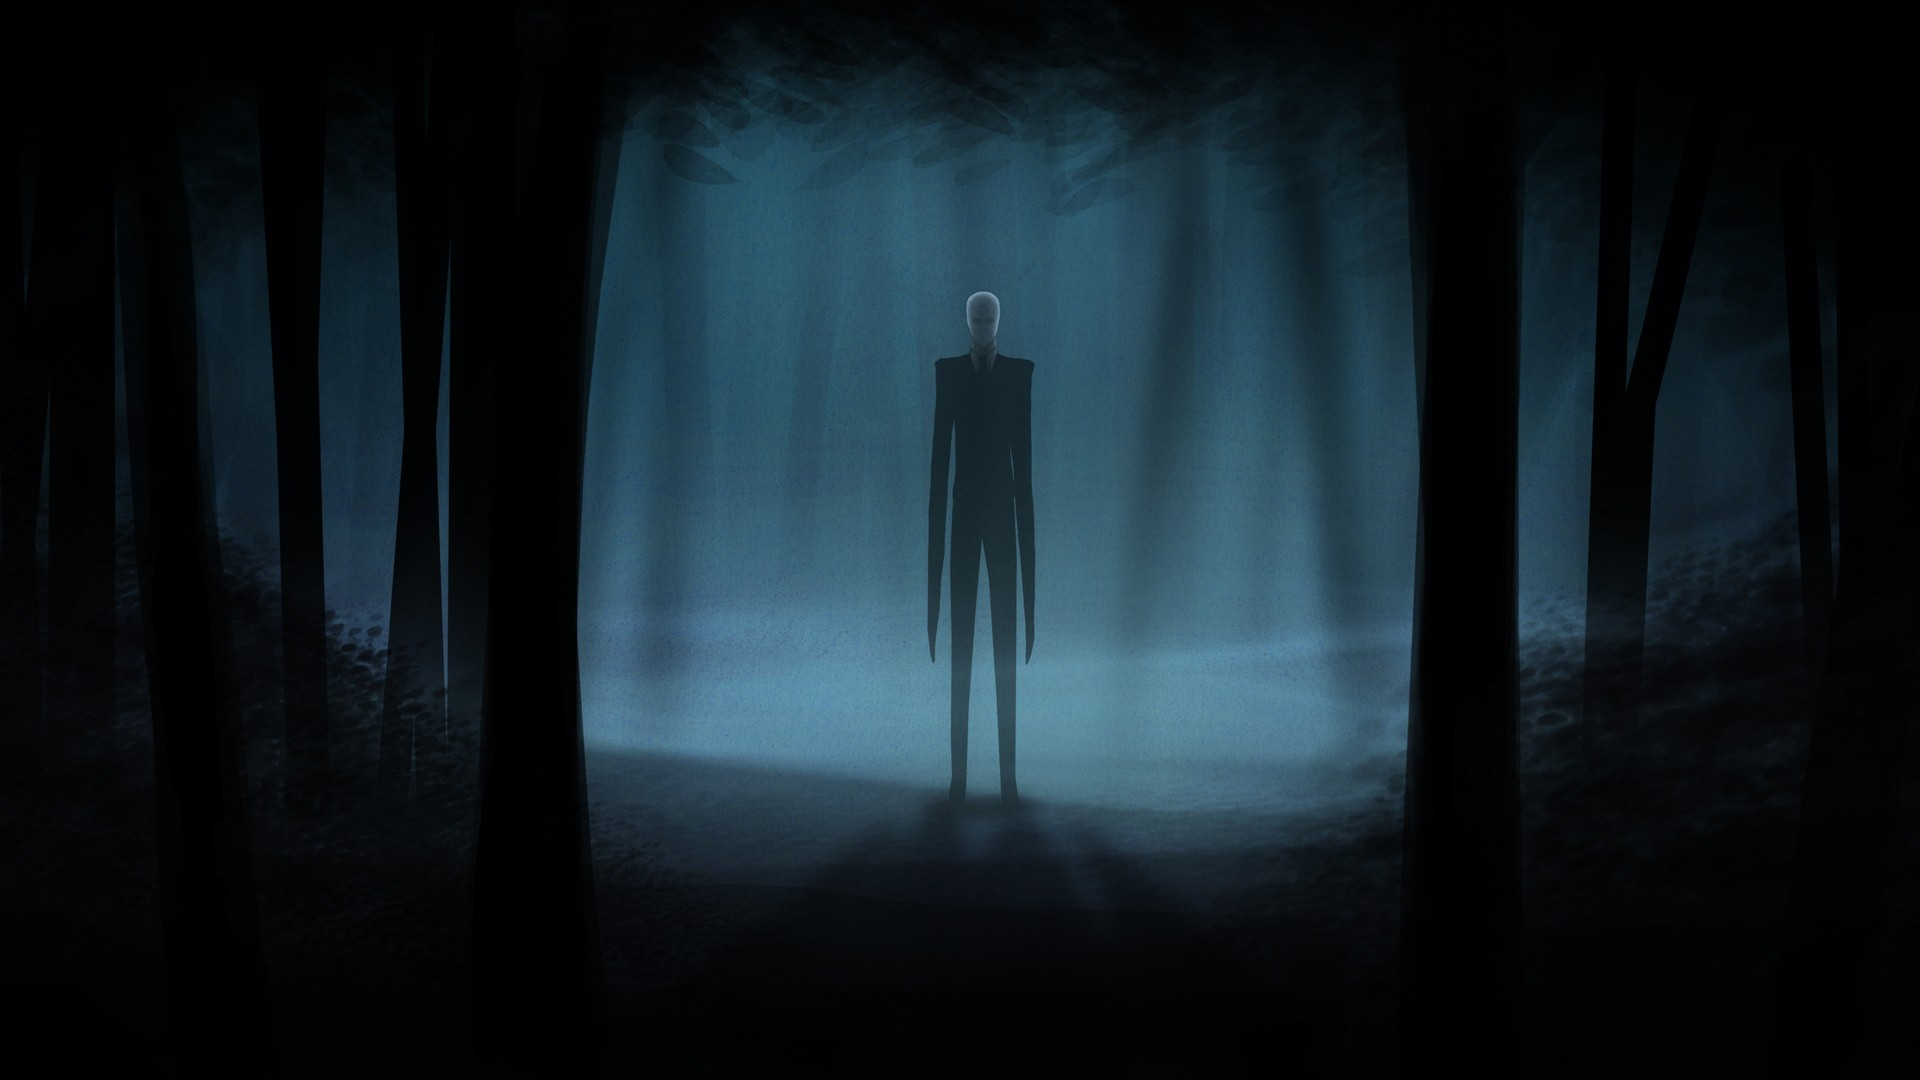 Slender Man Creepy Dark Videogames Horror Trees Forest Wallpaper